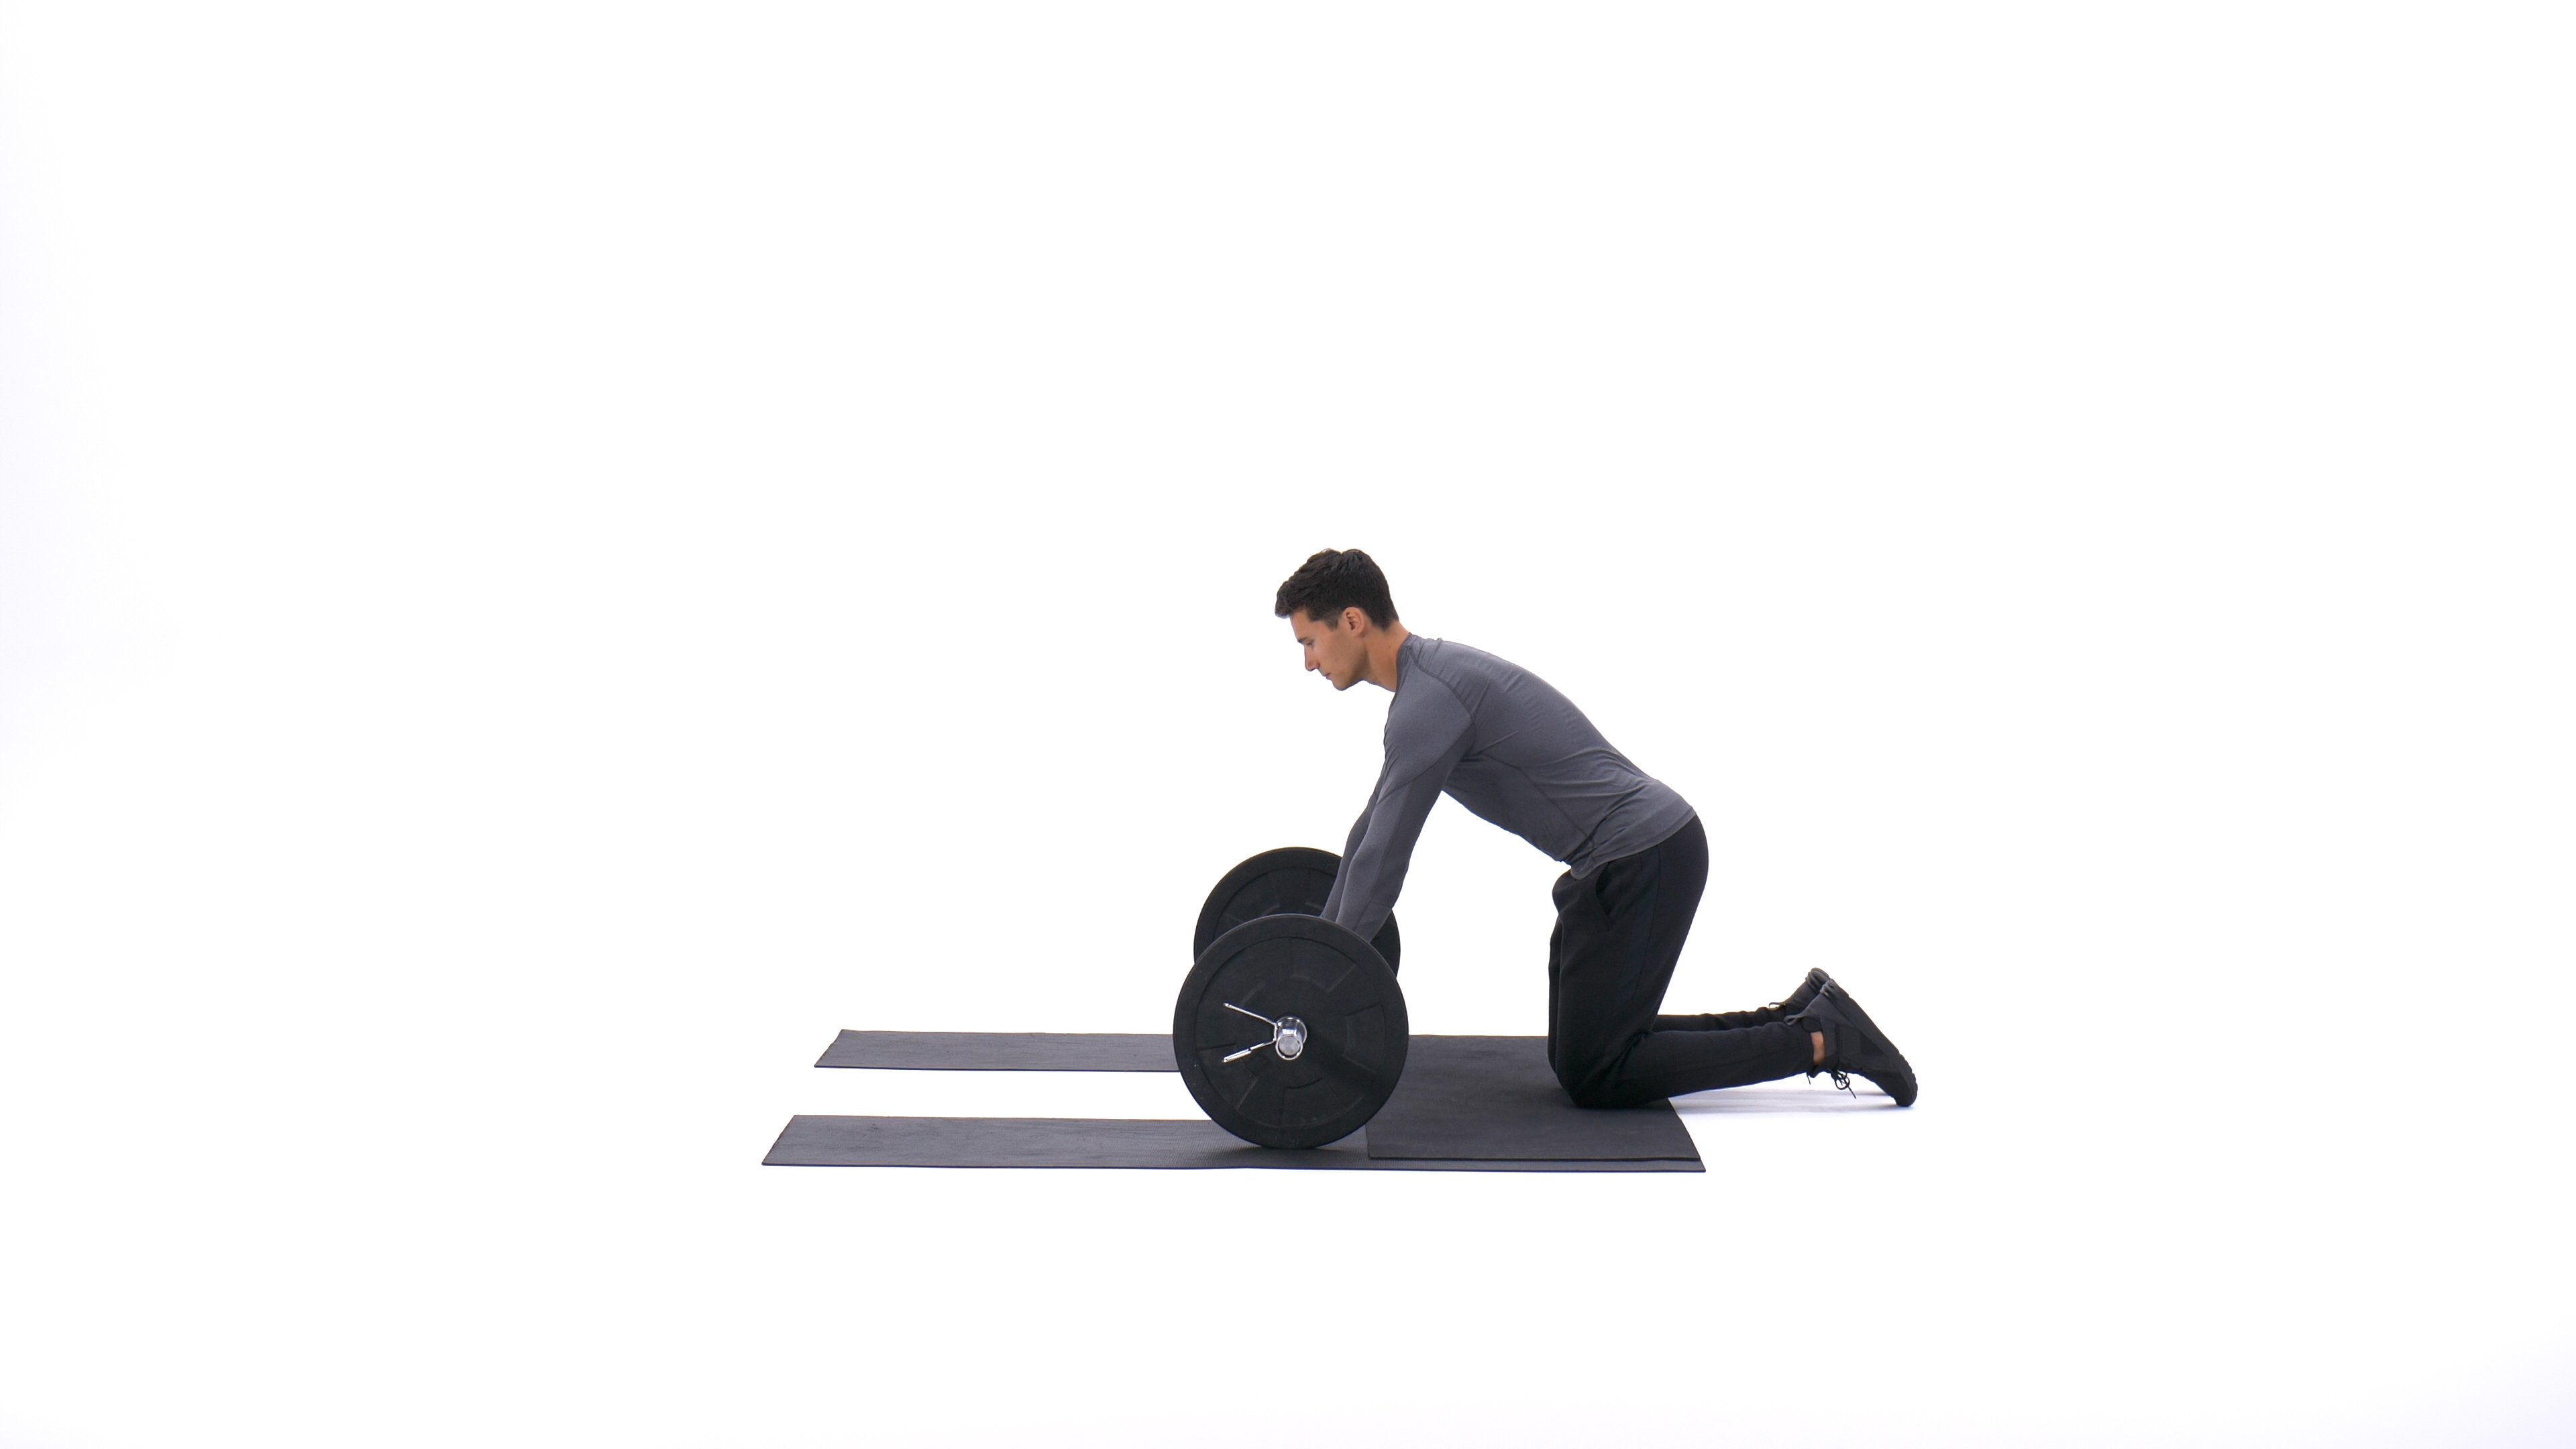 Barbell Ab Rollout - On Knees image